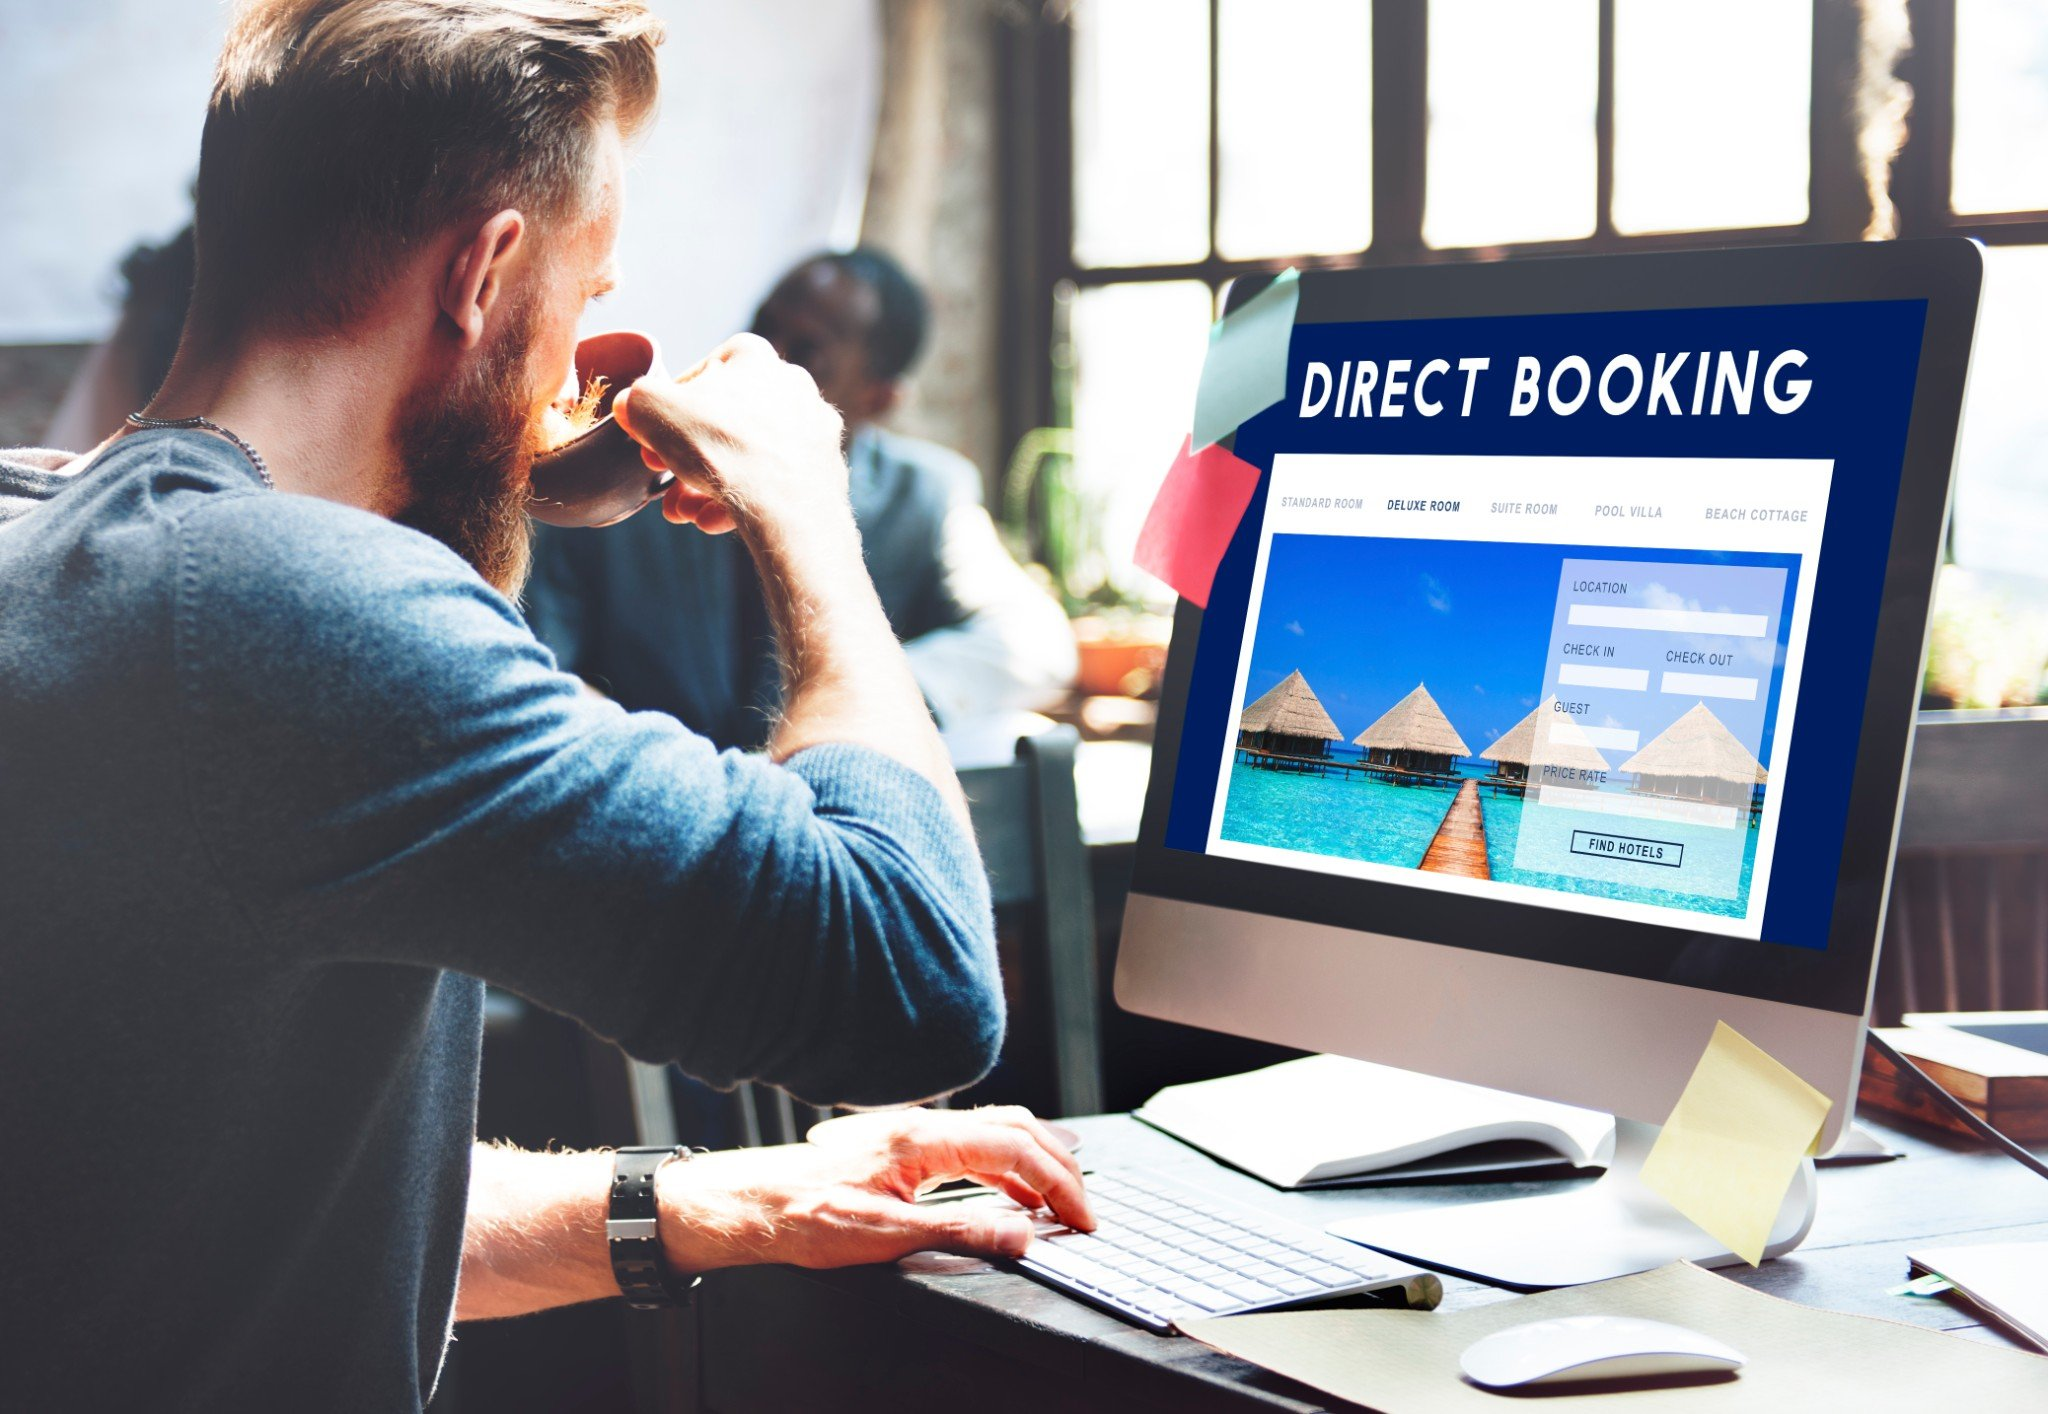 5 ways to increase direct bookings — National Hotel Supplies